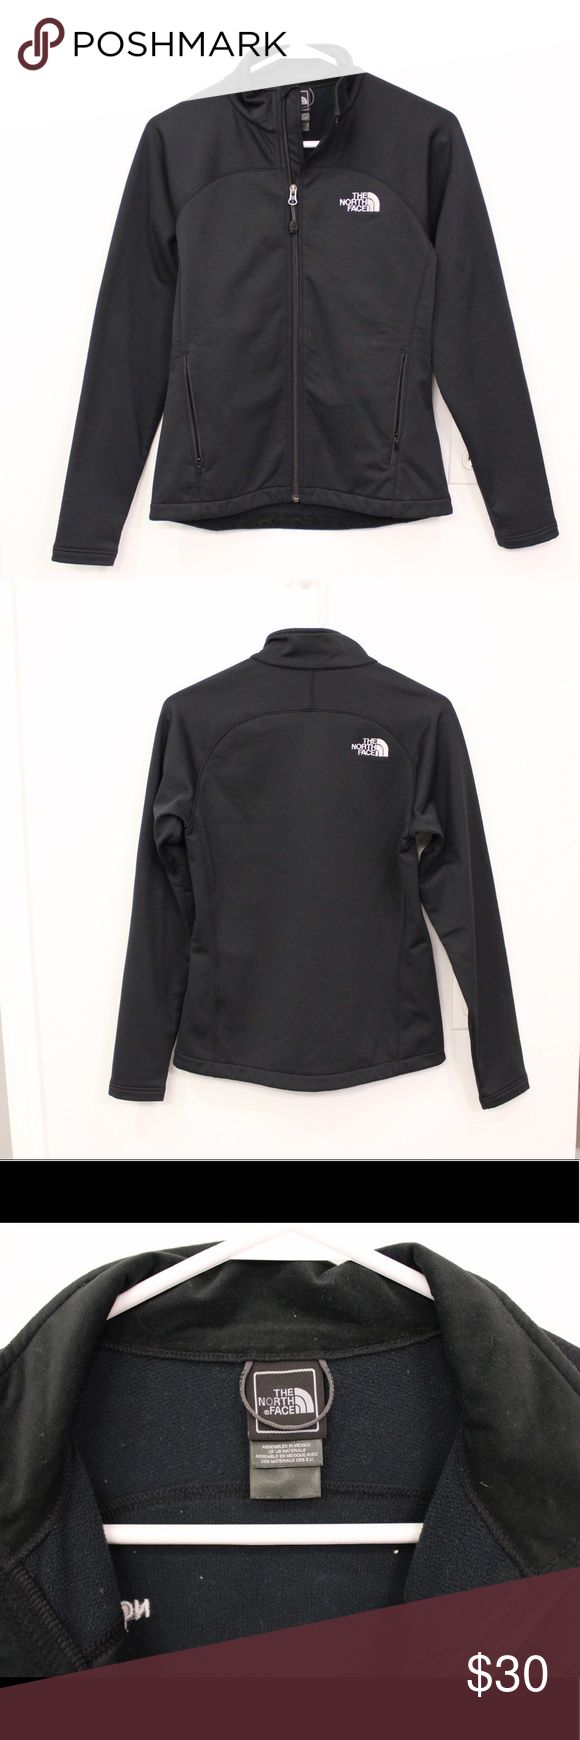 The North Face Jacket - Black The North Face Jacket - Black Soft-shell Jacket. Center zipper, zippered pockets Made of Polyester and Spandex 10% Purchased from The North Face Outlet, worn a few times, in great condition. Size: Small The North Face Jackets & Coats